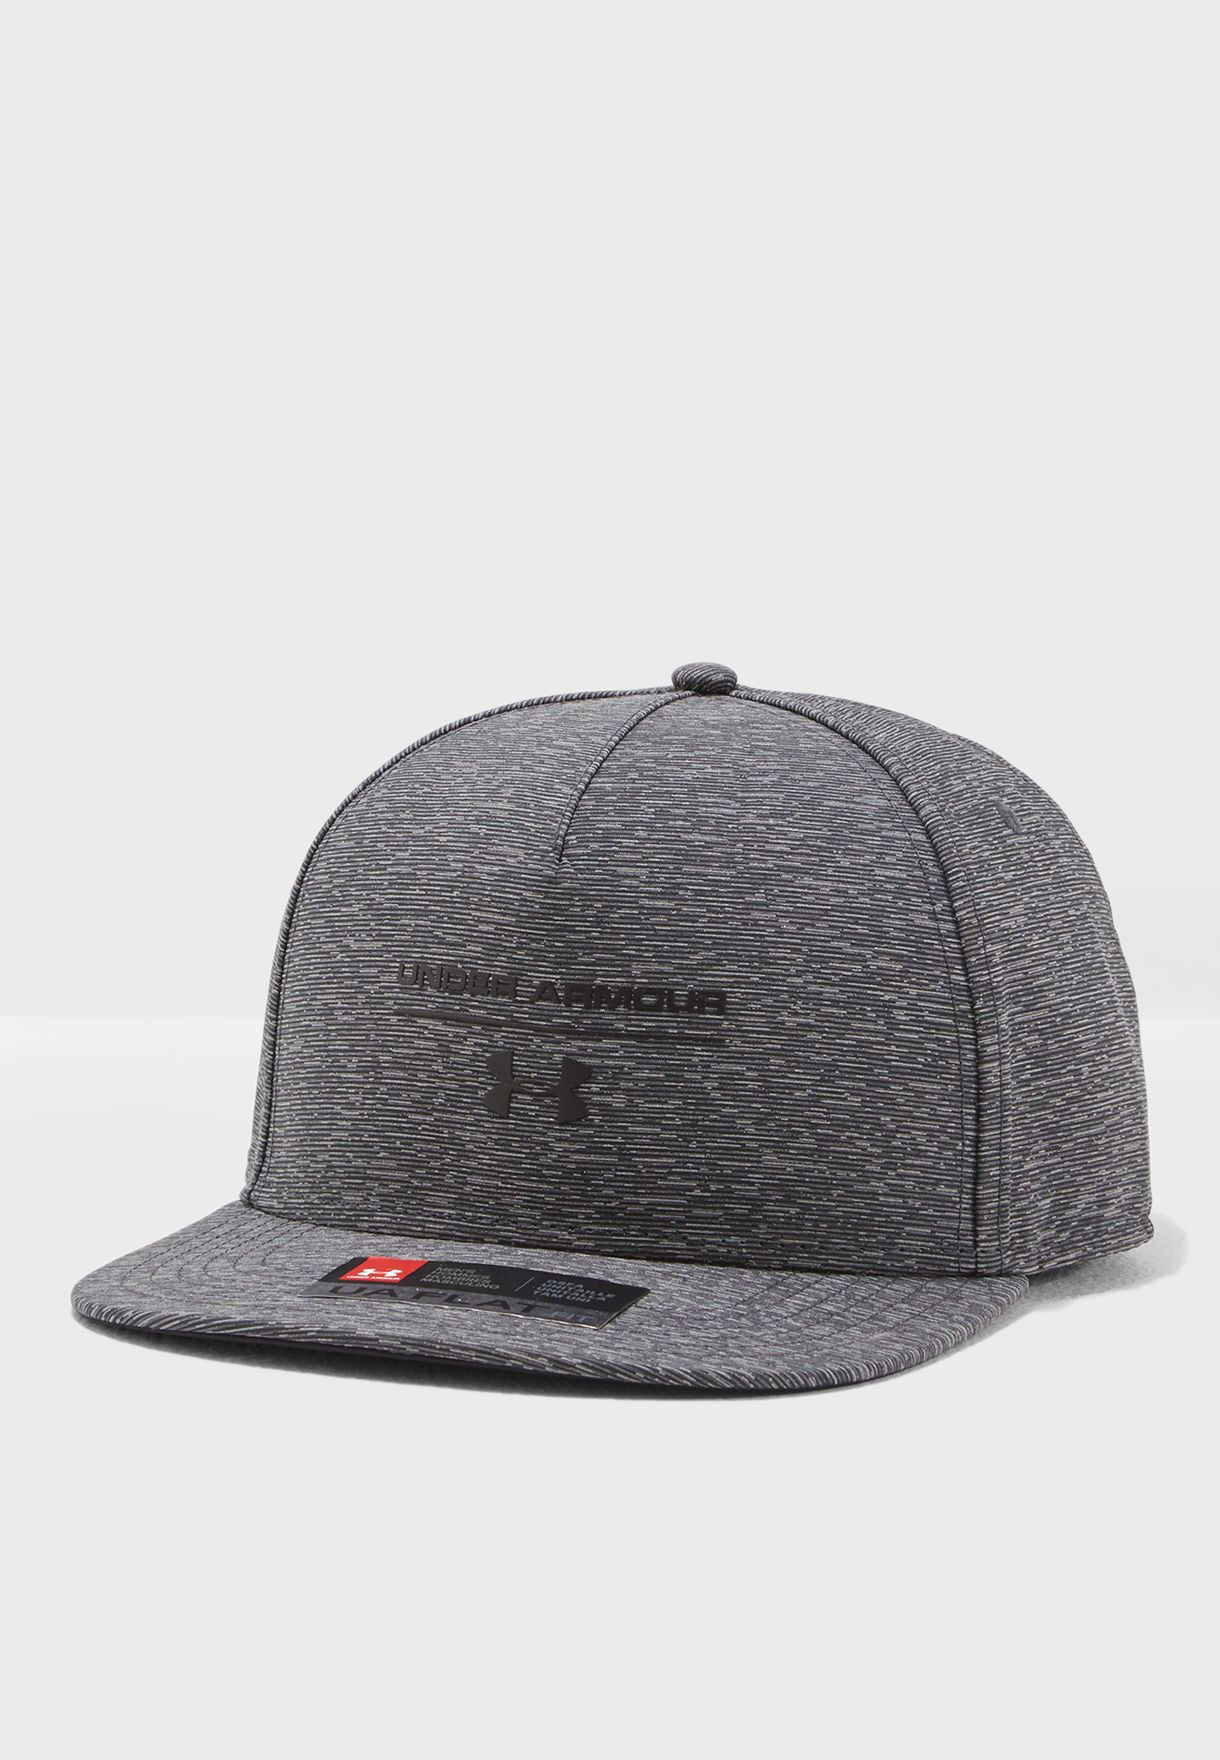 69a695c767b Shop Under Armour grey Reflective Flat Brim Cap 1305450-001 for Men ...